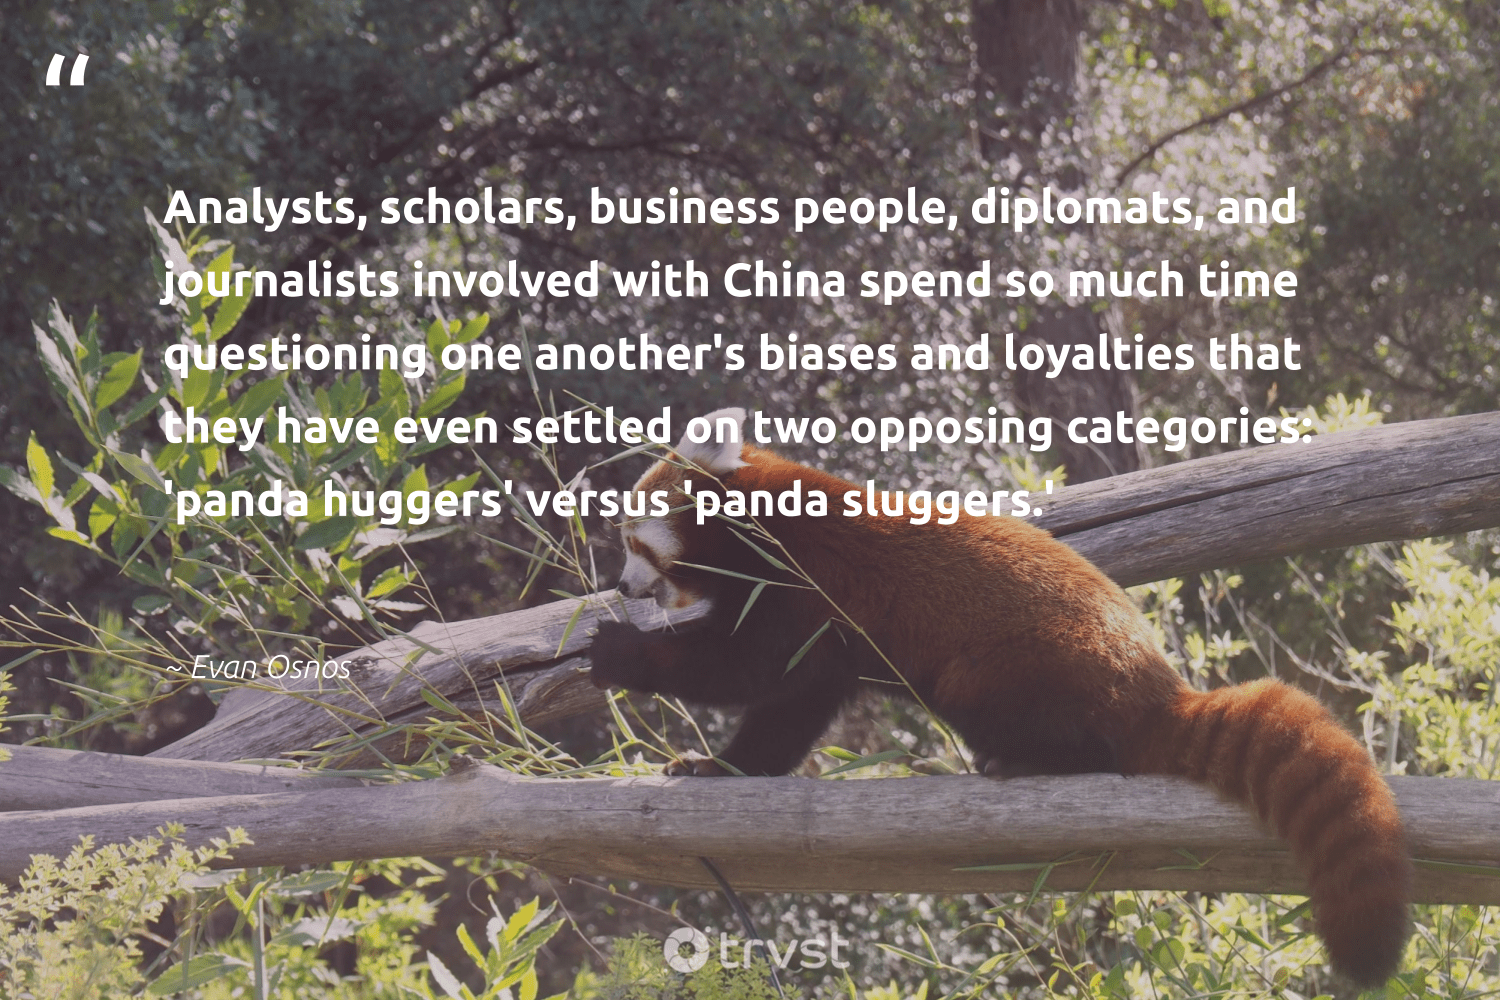 """""""Analysts, scholars, business people, diplomats, and journalists involved with China spend so much time questioning one another's biases and loyalties that they have even settled on two opposing categories: 'panda huggers' versus 'panda sluggers.'""""  - Evan Osnos #trvst #quotes #majesticwildlife #takeaction #bears #dosomething #protectnature #bethechange #bearlove #dogood #perfectnature #ecoconscious"""